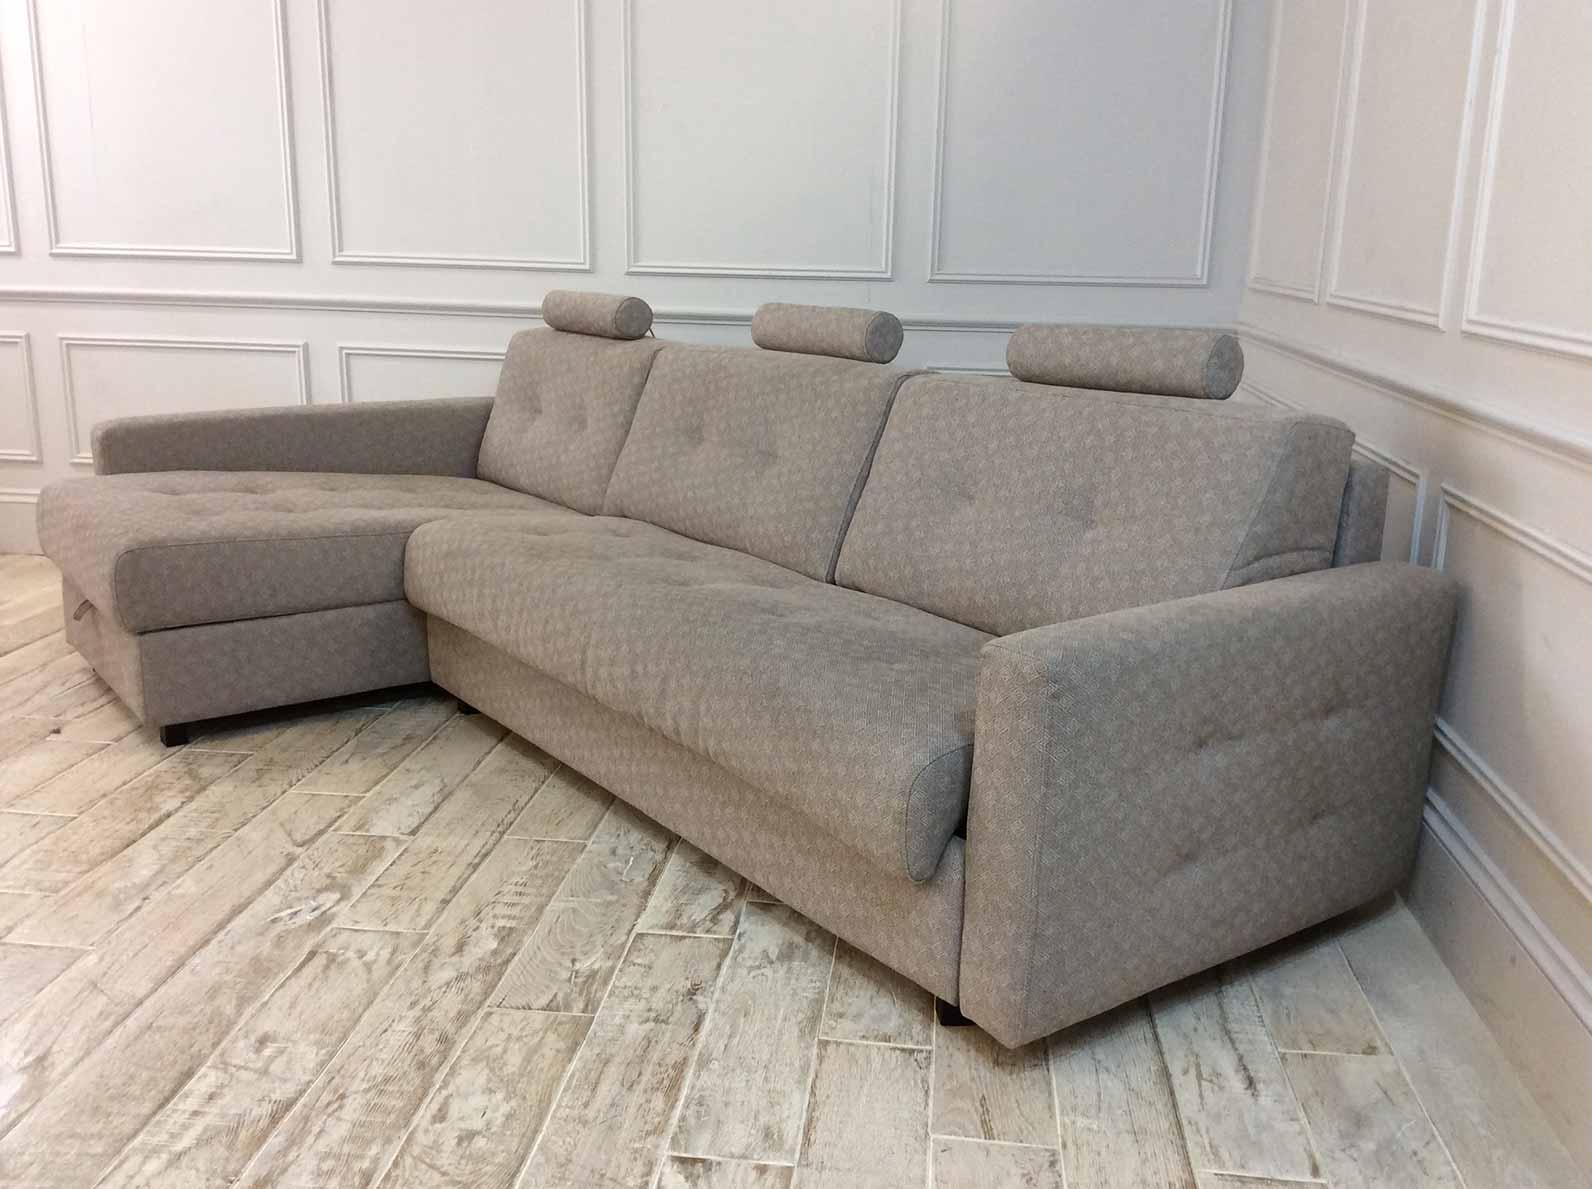 Alexi 4 Seater Sofa With Left Hand Storage Chaise And Straight Arms in Houston Weaves - Houston 248